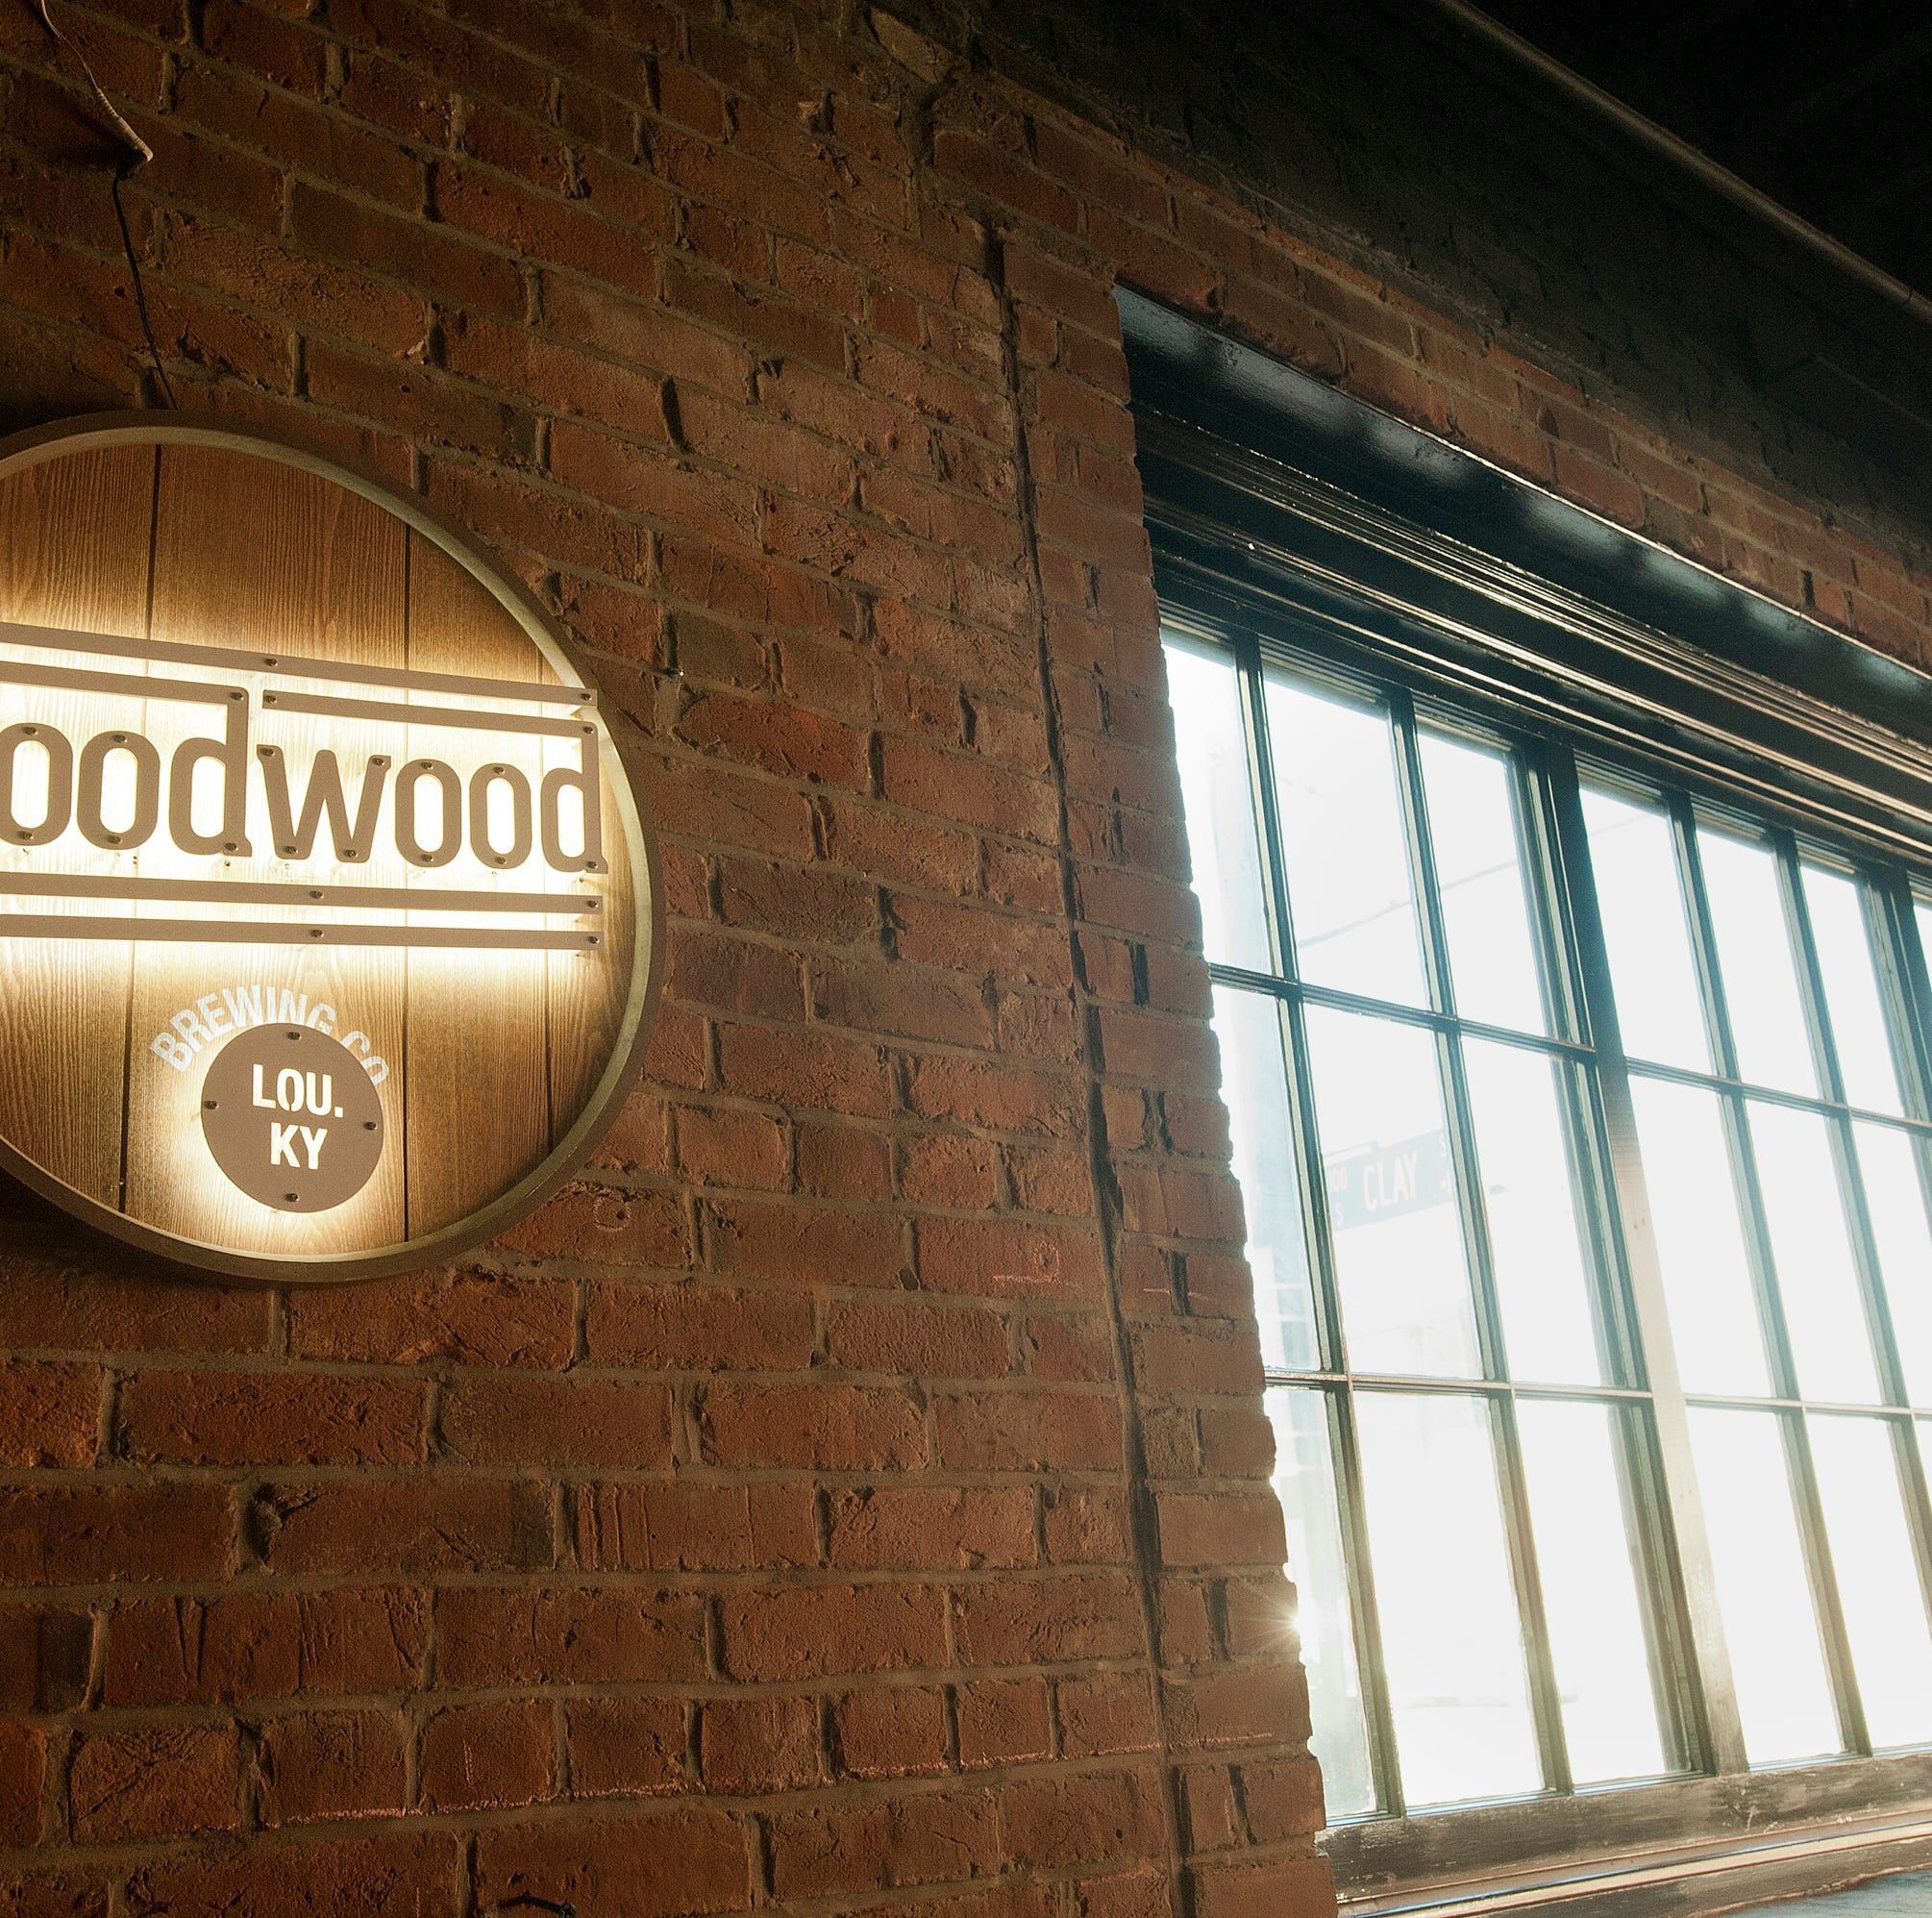 Goodwood Brewing opening a second brew house with more space for dancing